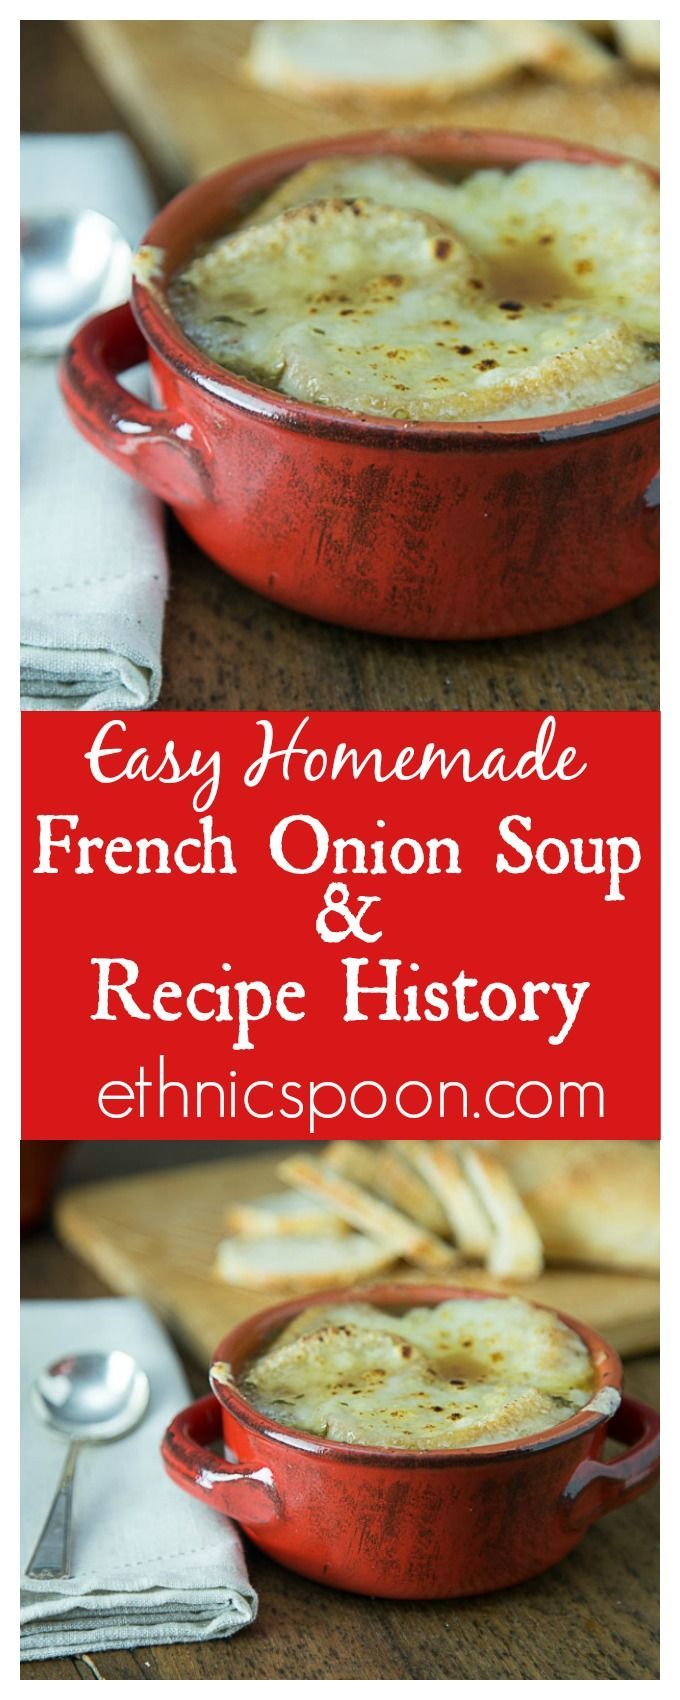 French Onion Soup And Its History Recipe Delicious French Onion Soup Homemade French Onion Soup French Onion Soup Recipe